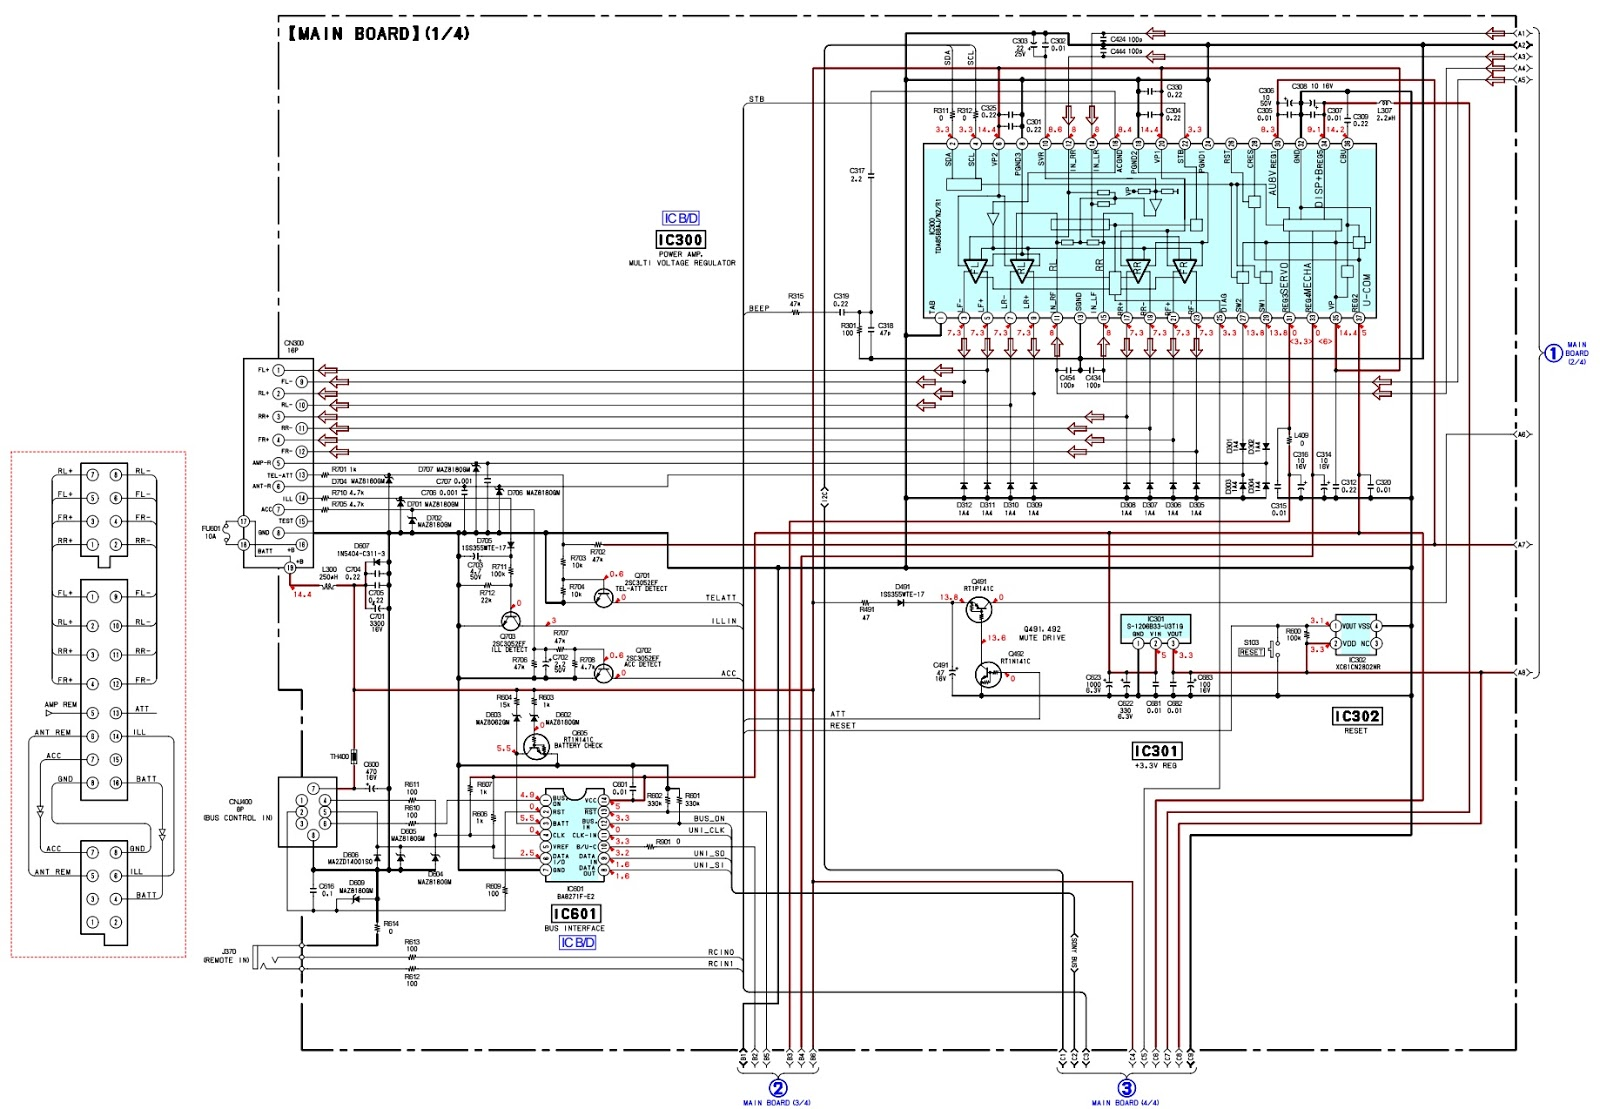 sony cdx gtmp wiring diagram sony image wiring cdx gt250mp wiring diagram pioneer deh p2000 wiring [ 1600 x 1109 Pixel ]